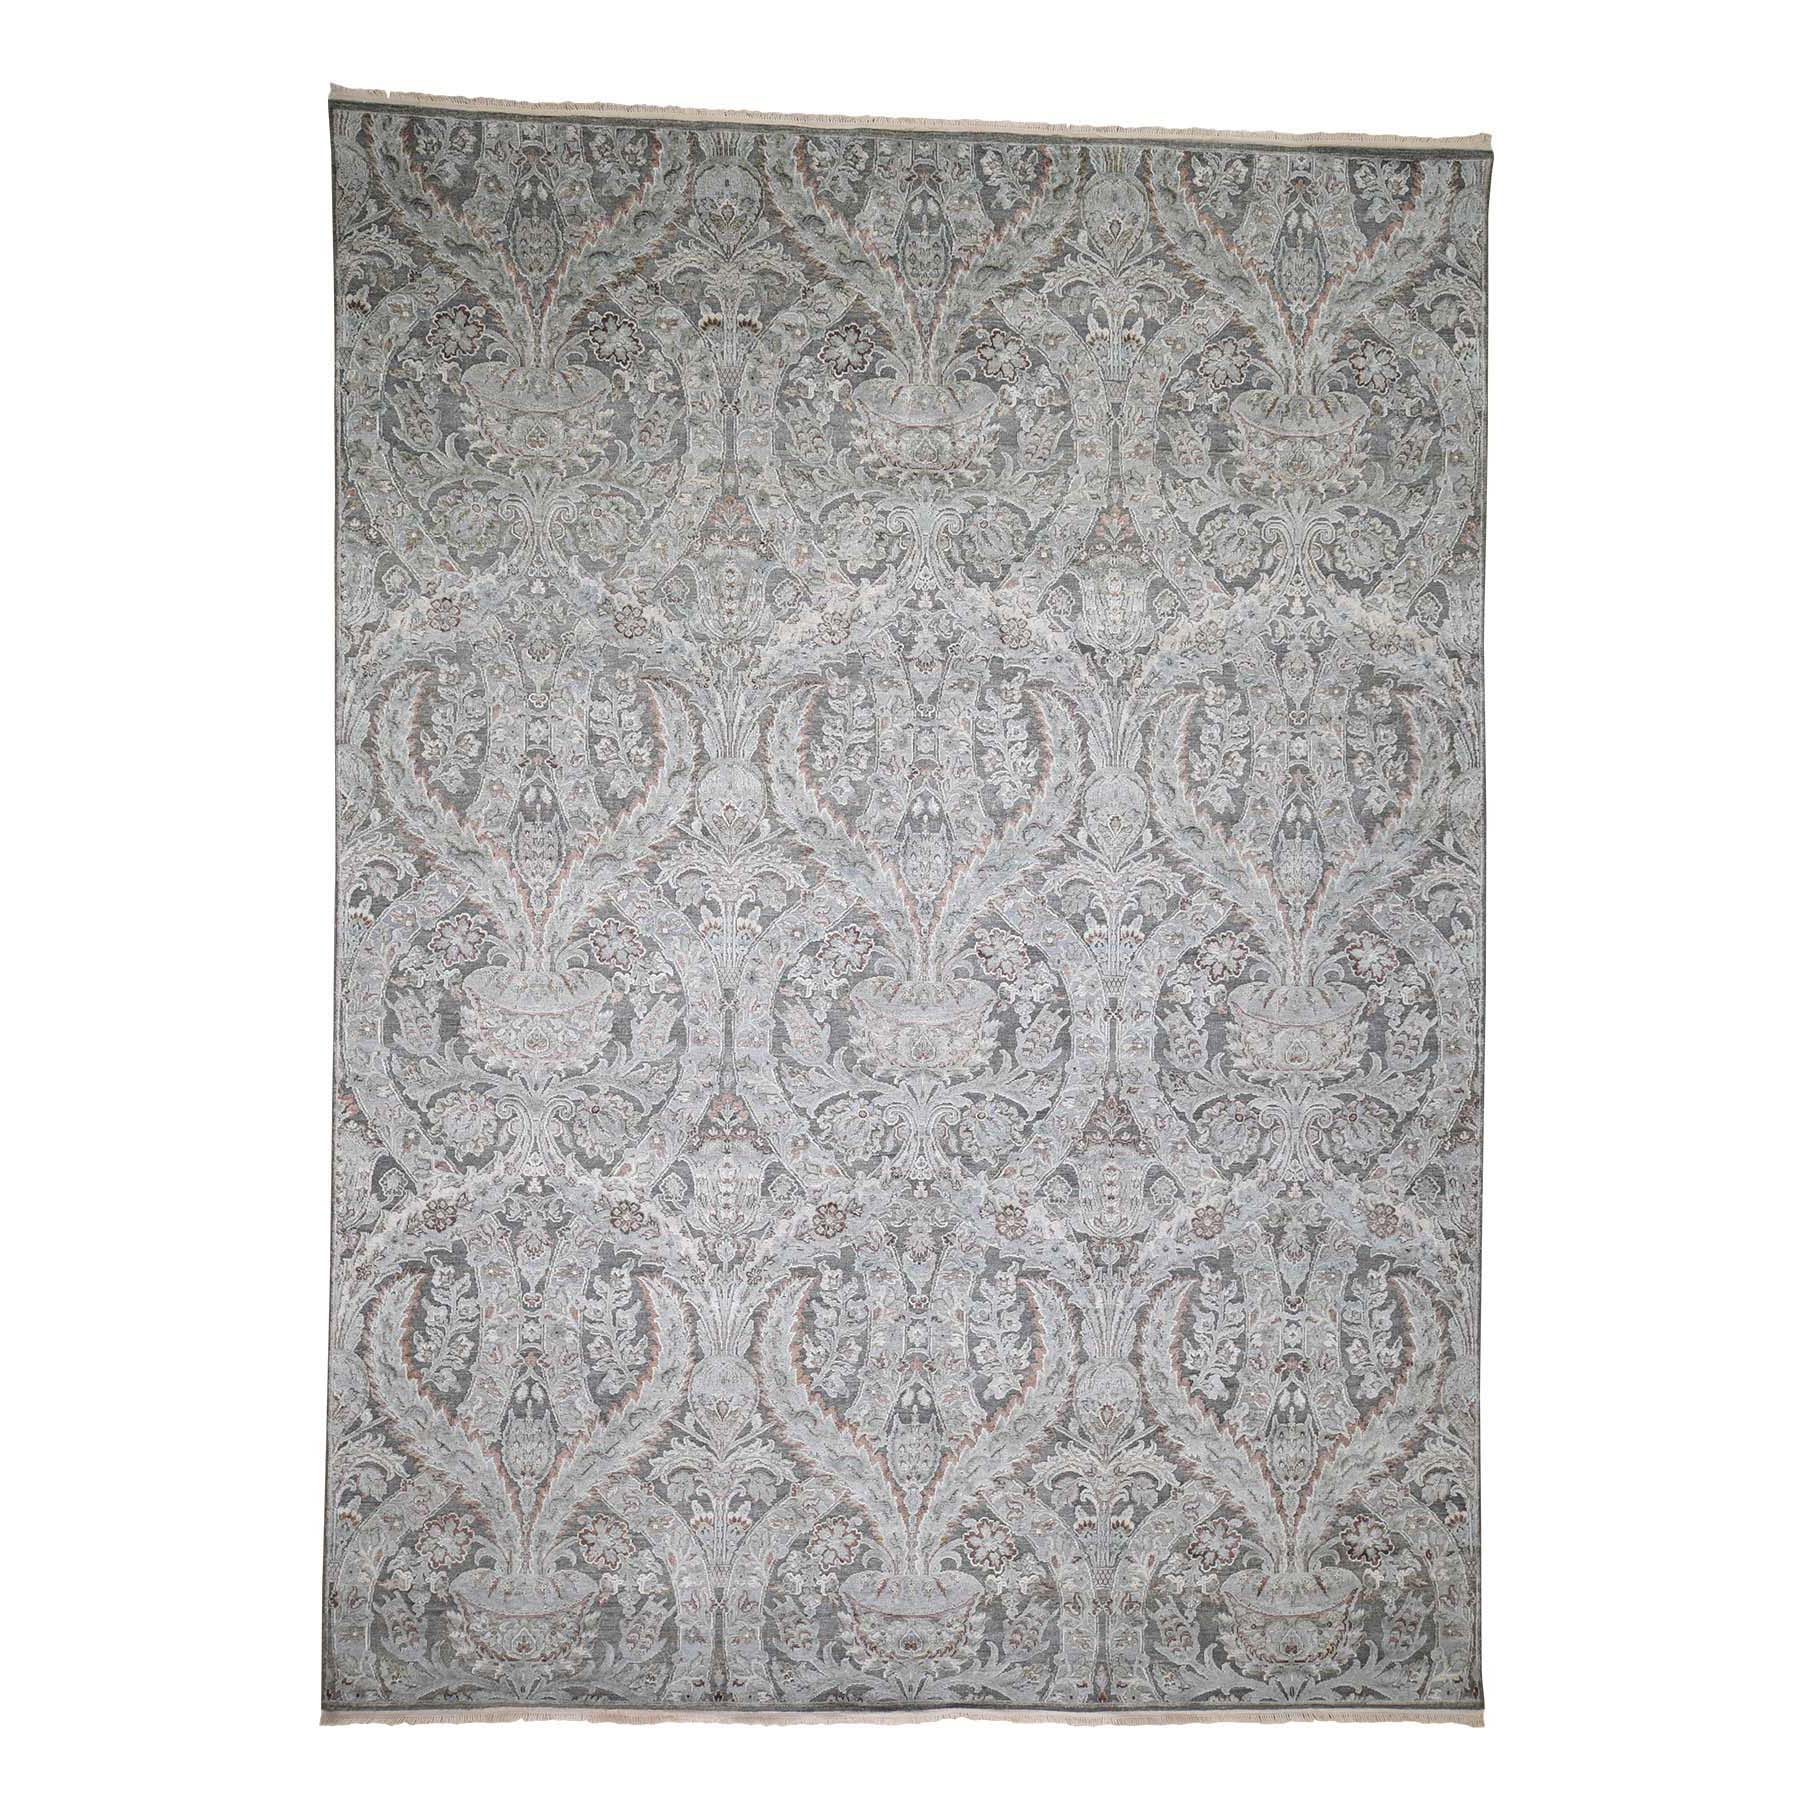 Wool and Real Silk Collection Hand Knotted Grey Rug No: 0182968